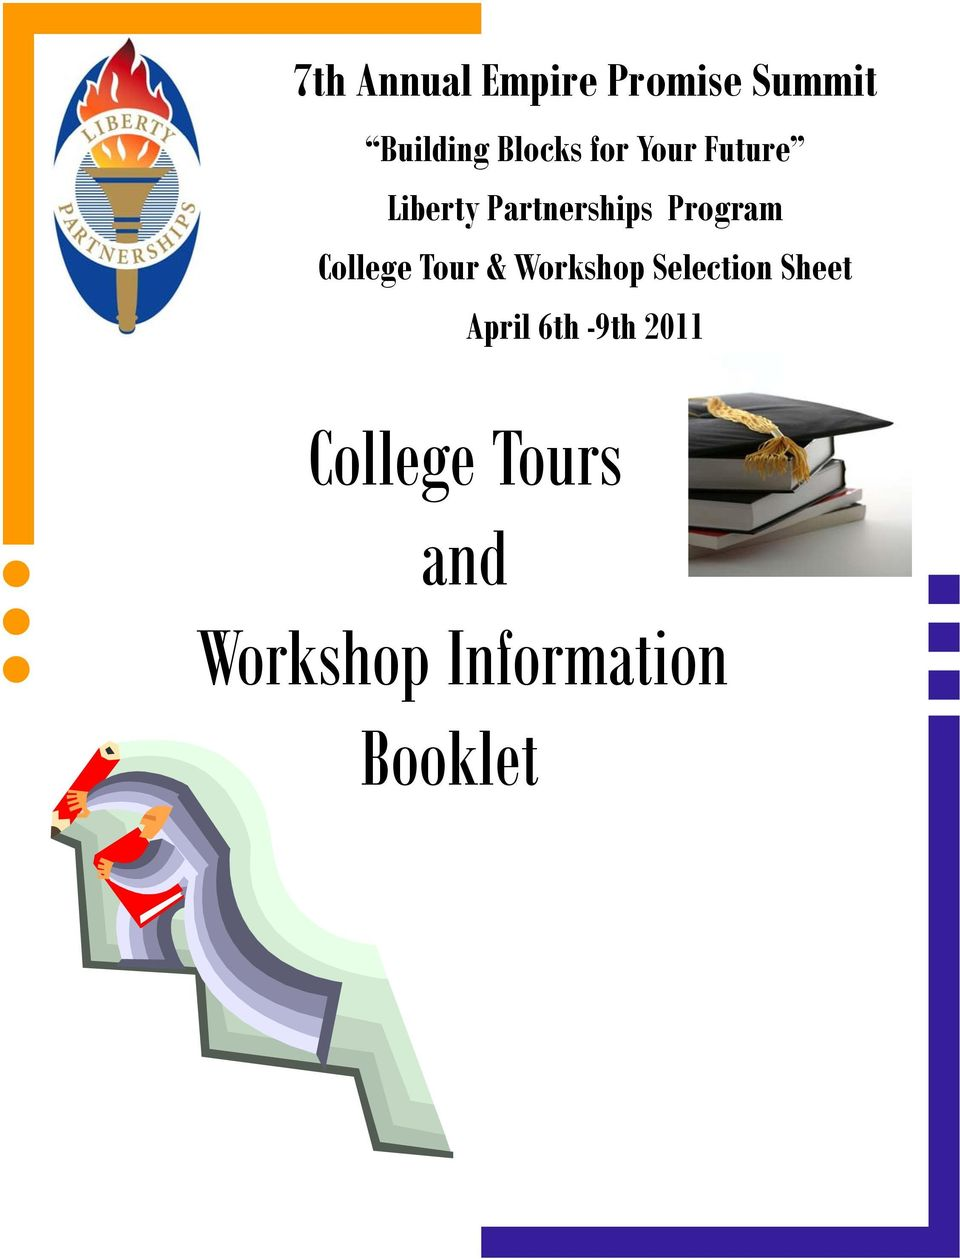 College Tour & Workshop Selection Sheet College Tour & Workshop Selection Sheet